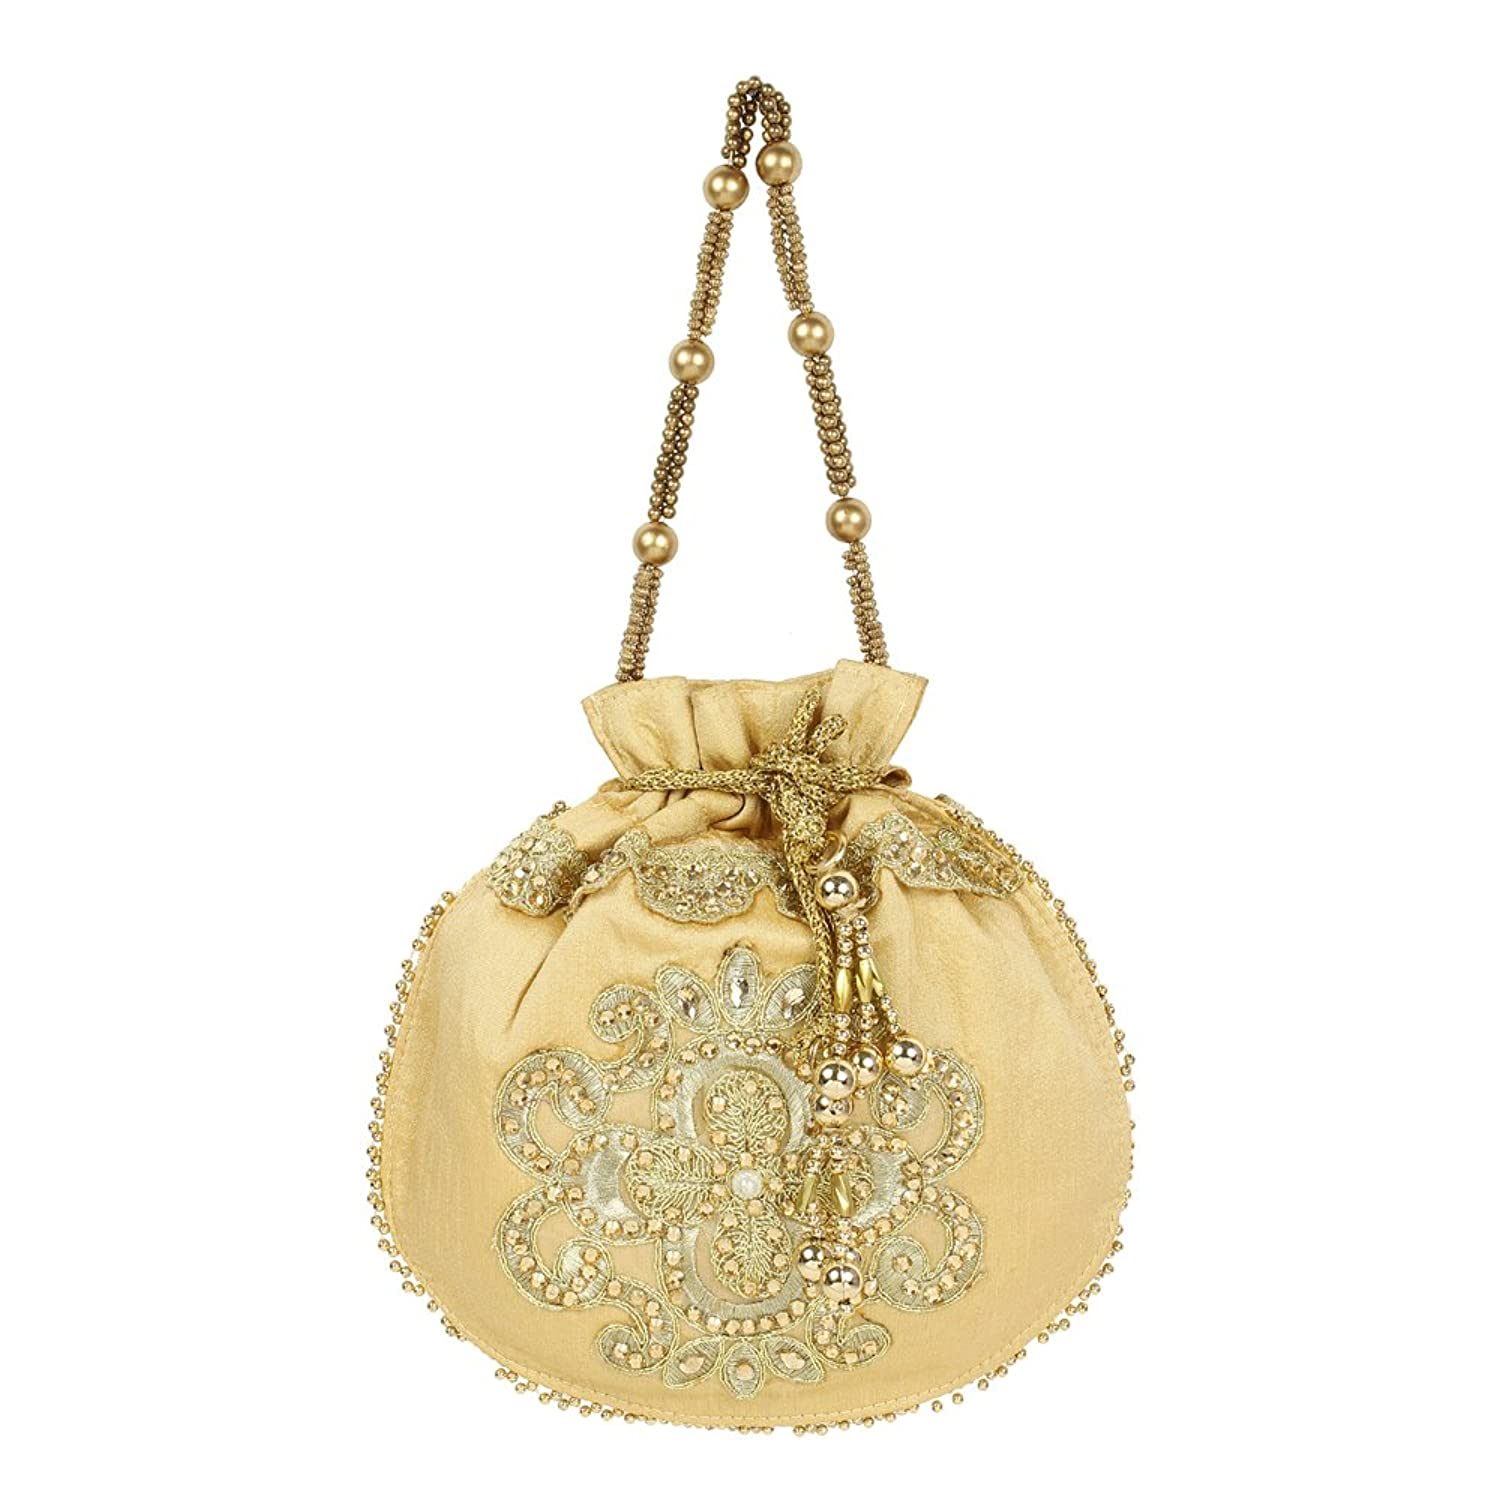 Vintage & Retro Handbags, Purses, Wallets, Bags Purse Collection Floral Shape Beautiful Drawstring Gold Colour Potli Purse For Womens $12.00 AT vintagedancer.com